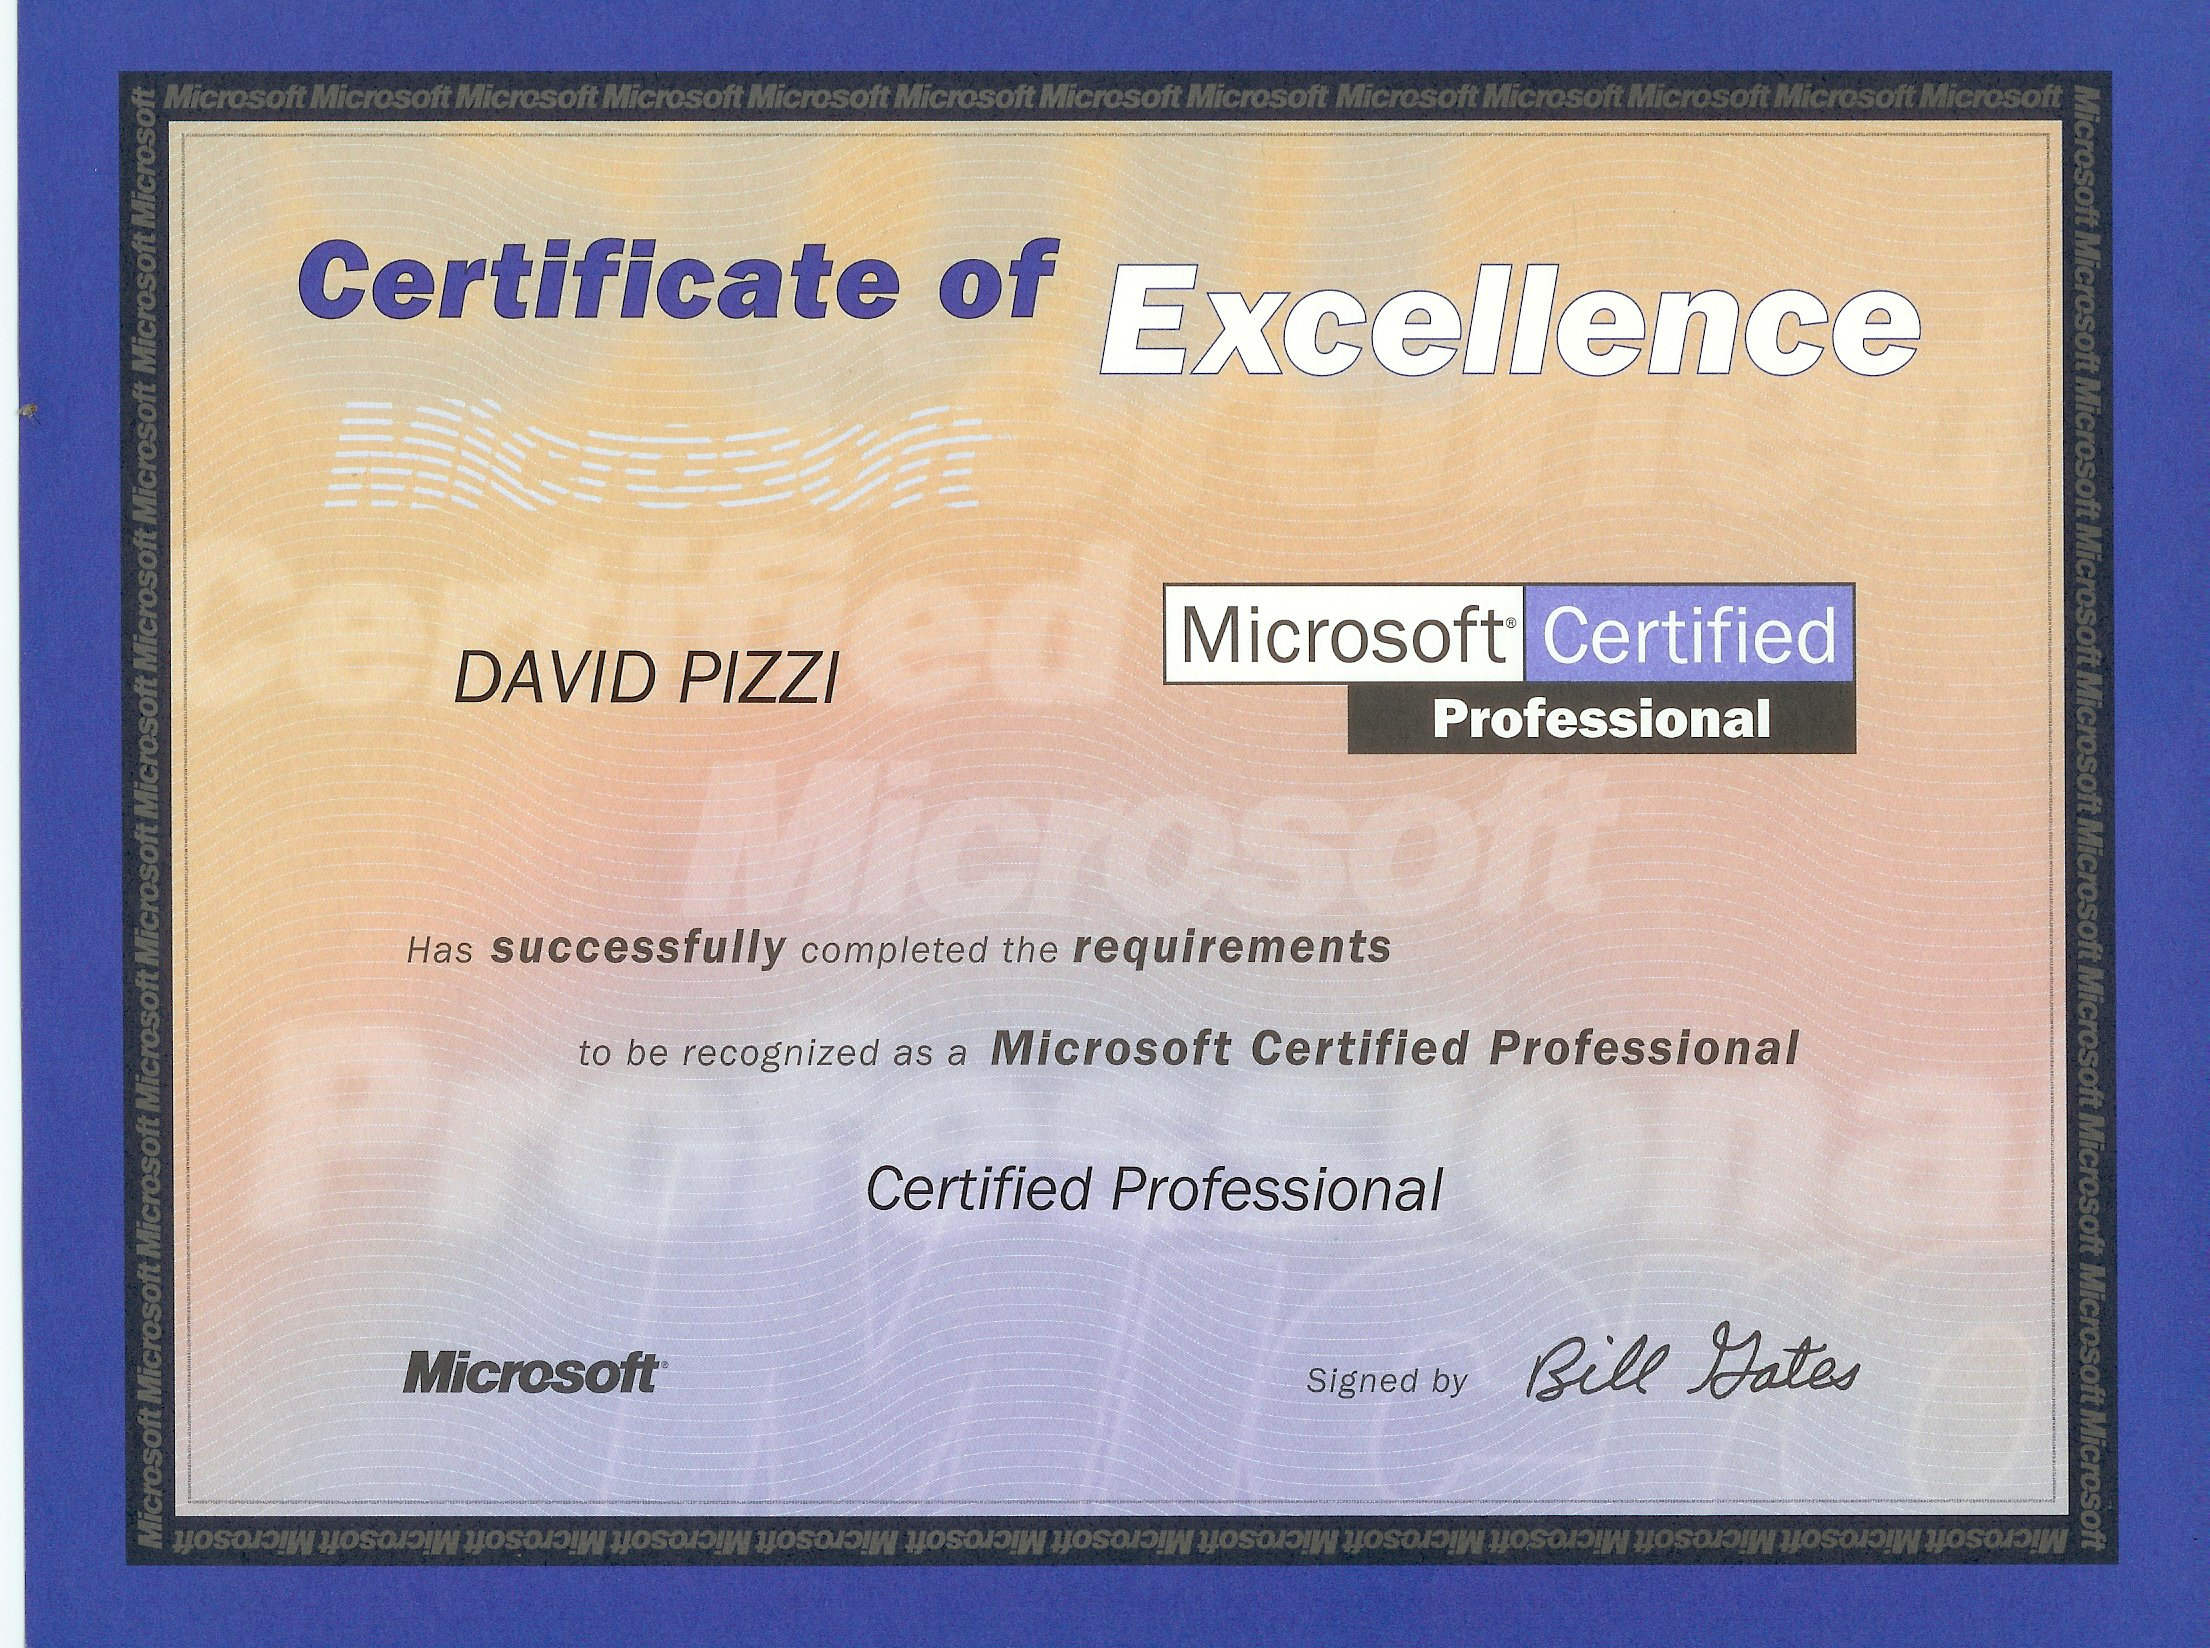 Pizzi Consulting – Microsoft Certificate of Excellence